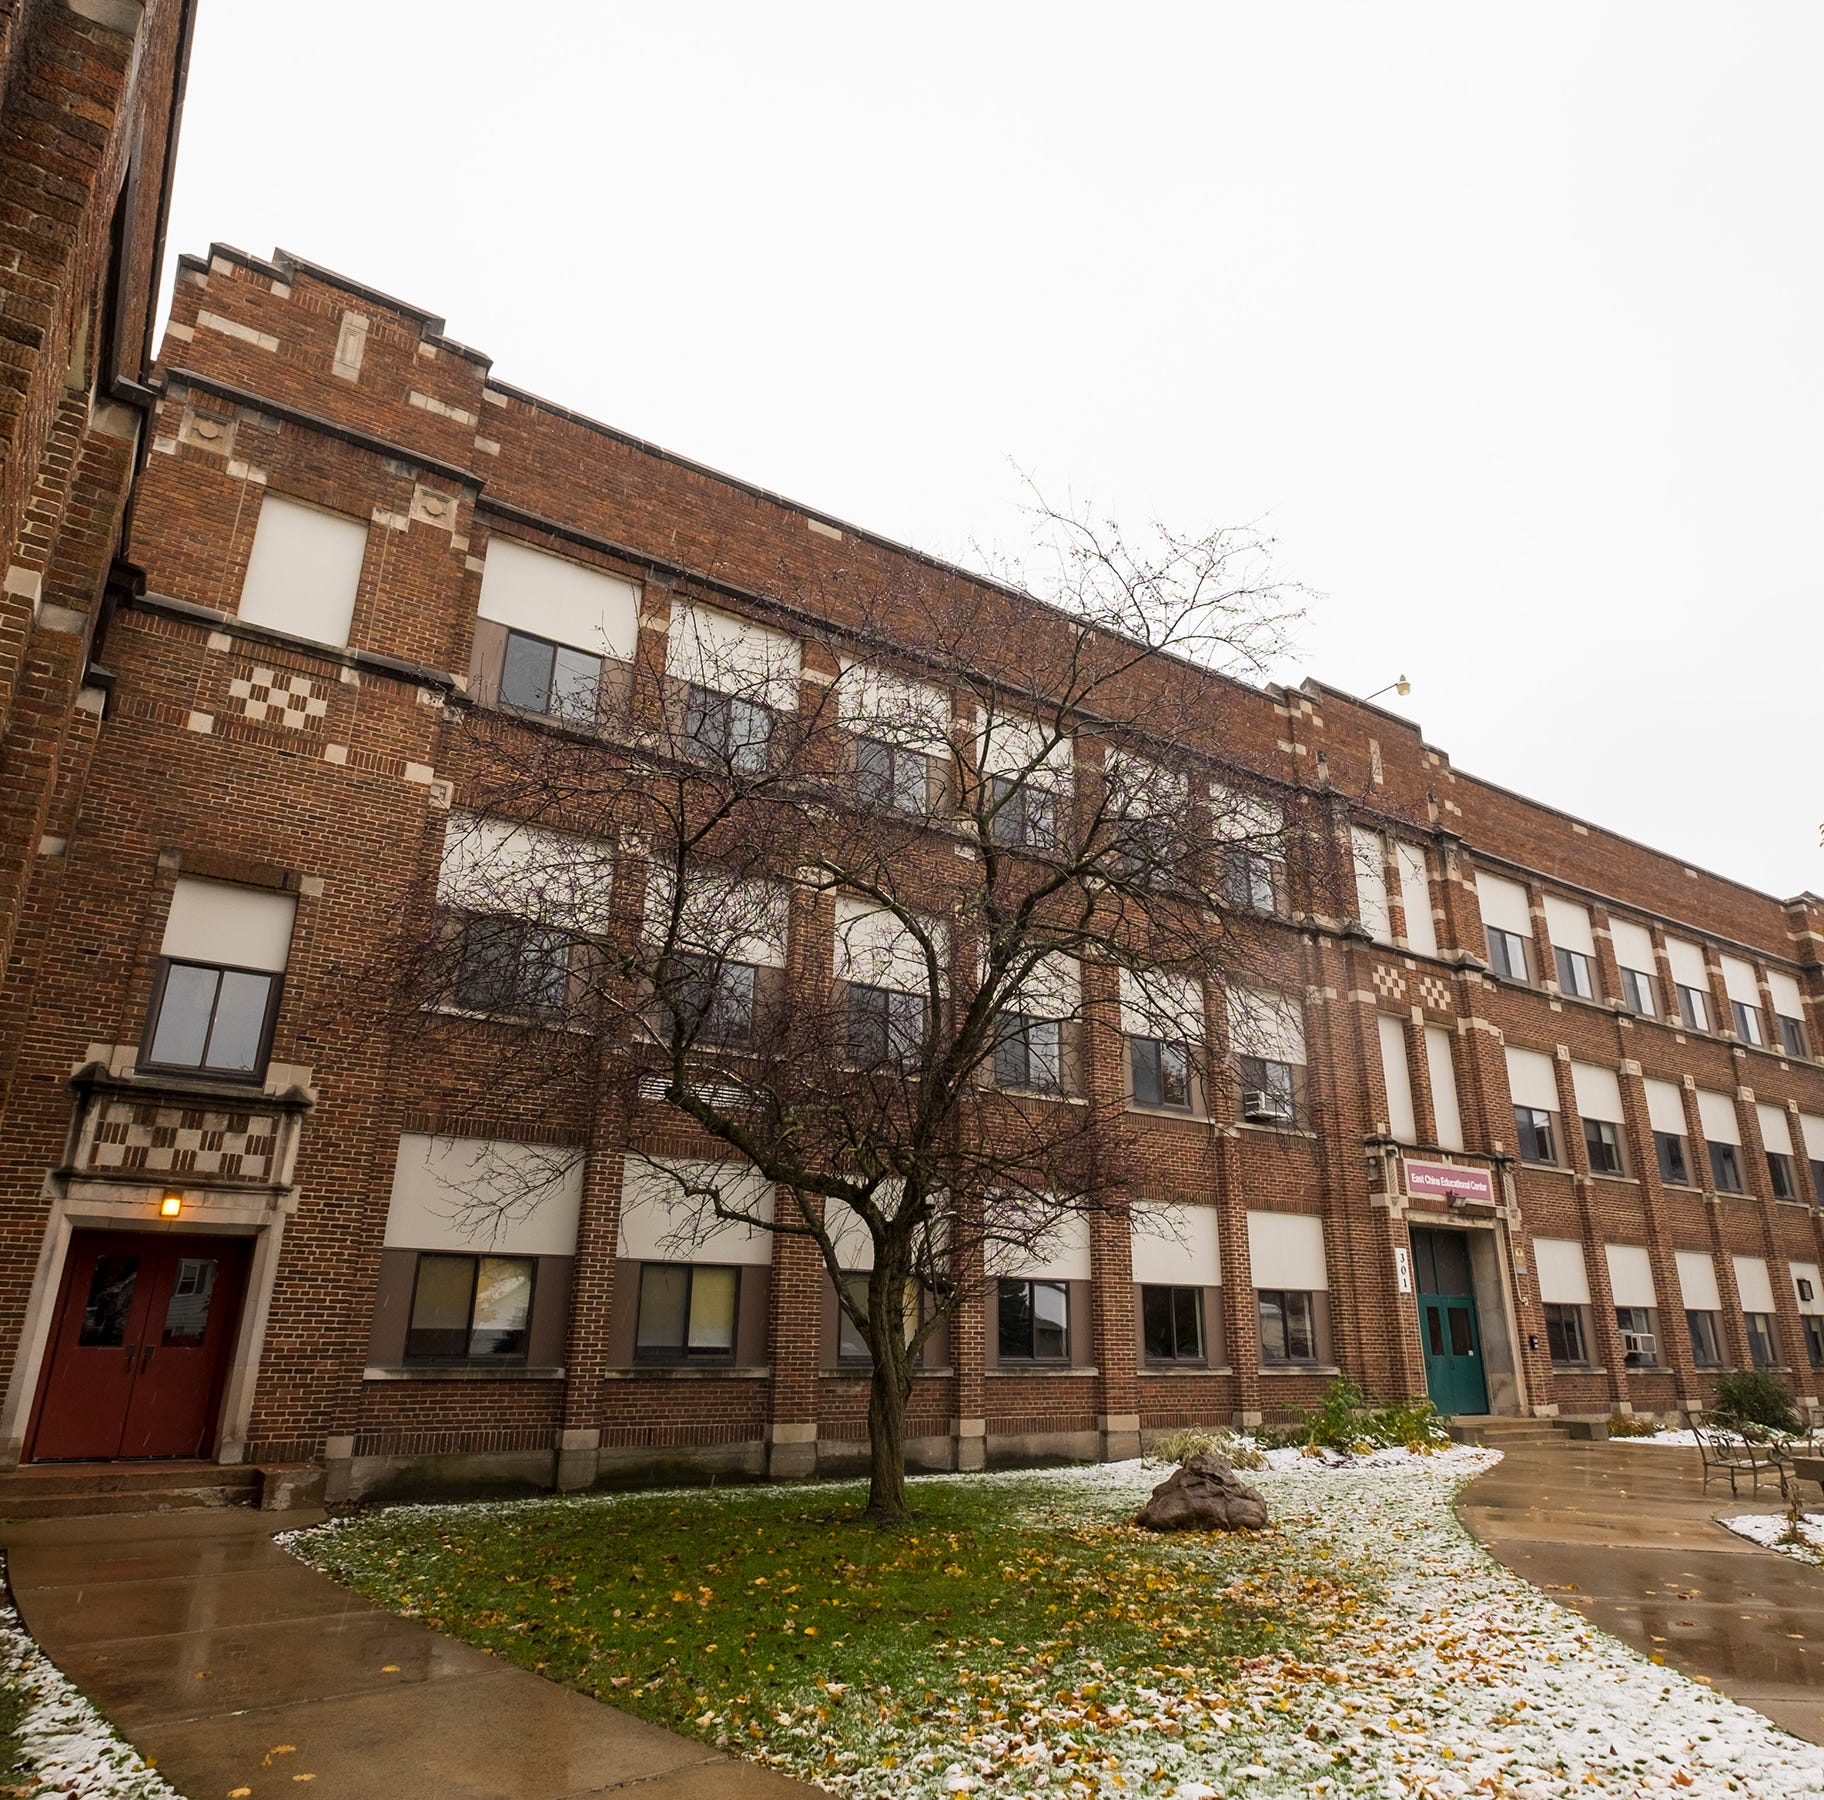 St. Clair Inn developer to house workers at old middle school